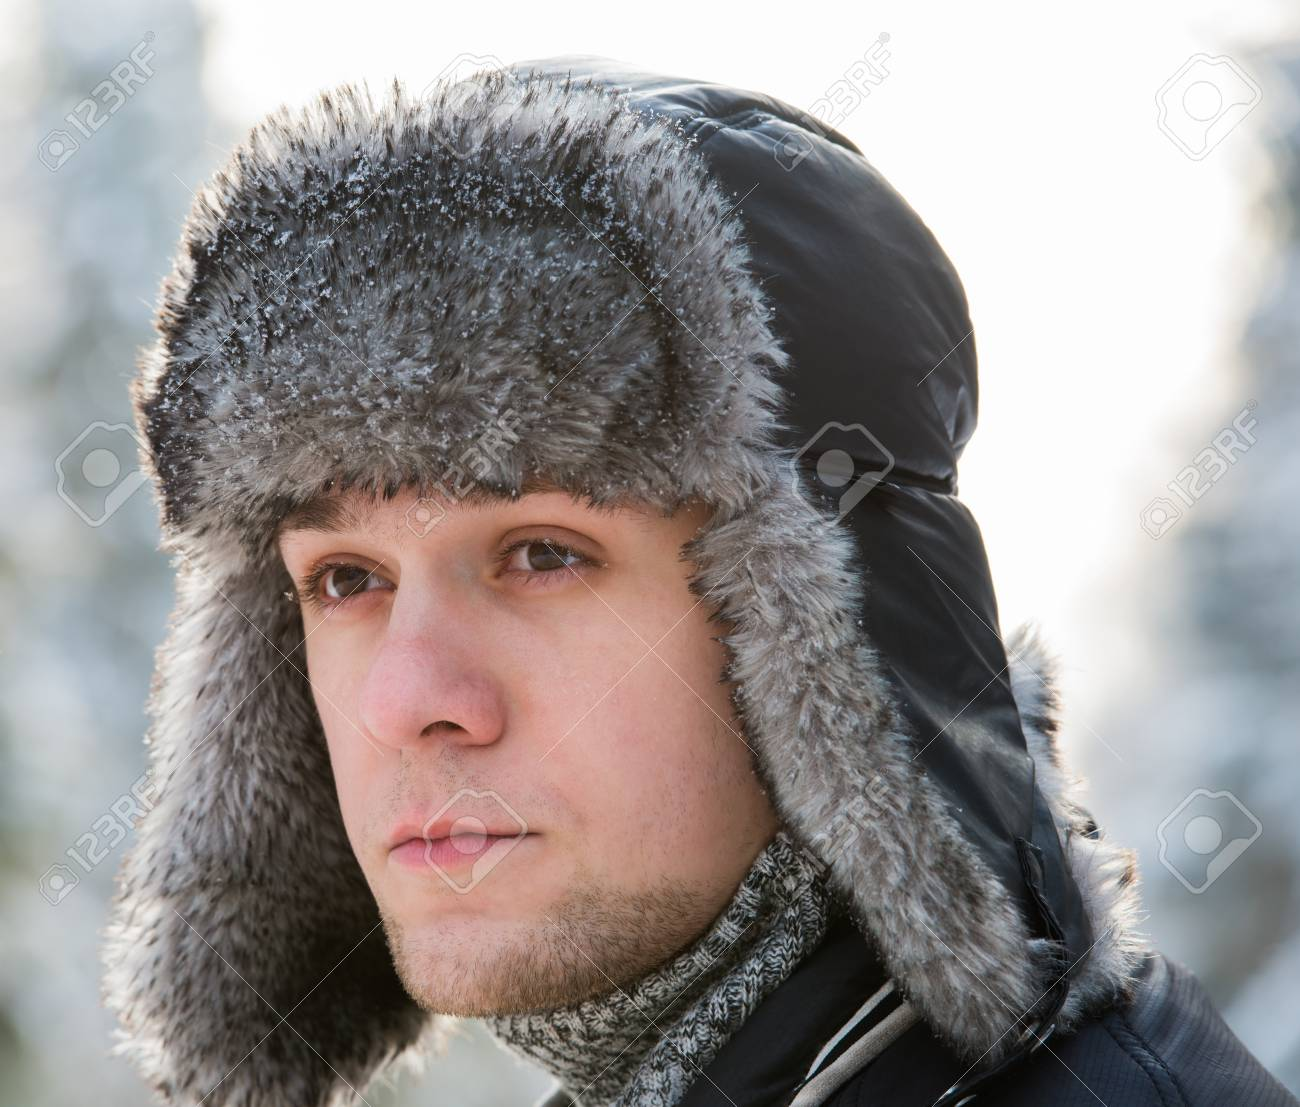 a man in a fur winter hat with ear flaps Stock Photo - 17543420 251f07735b3